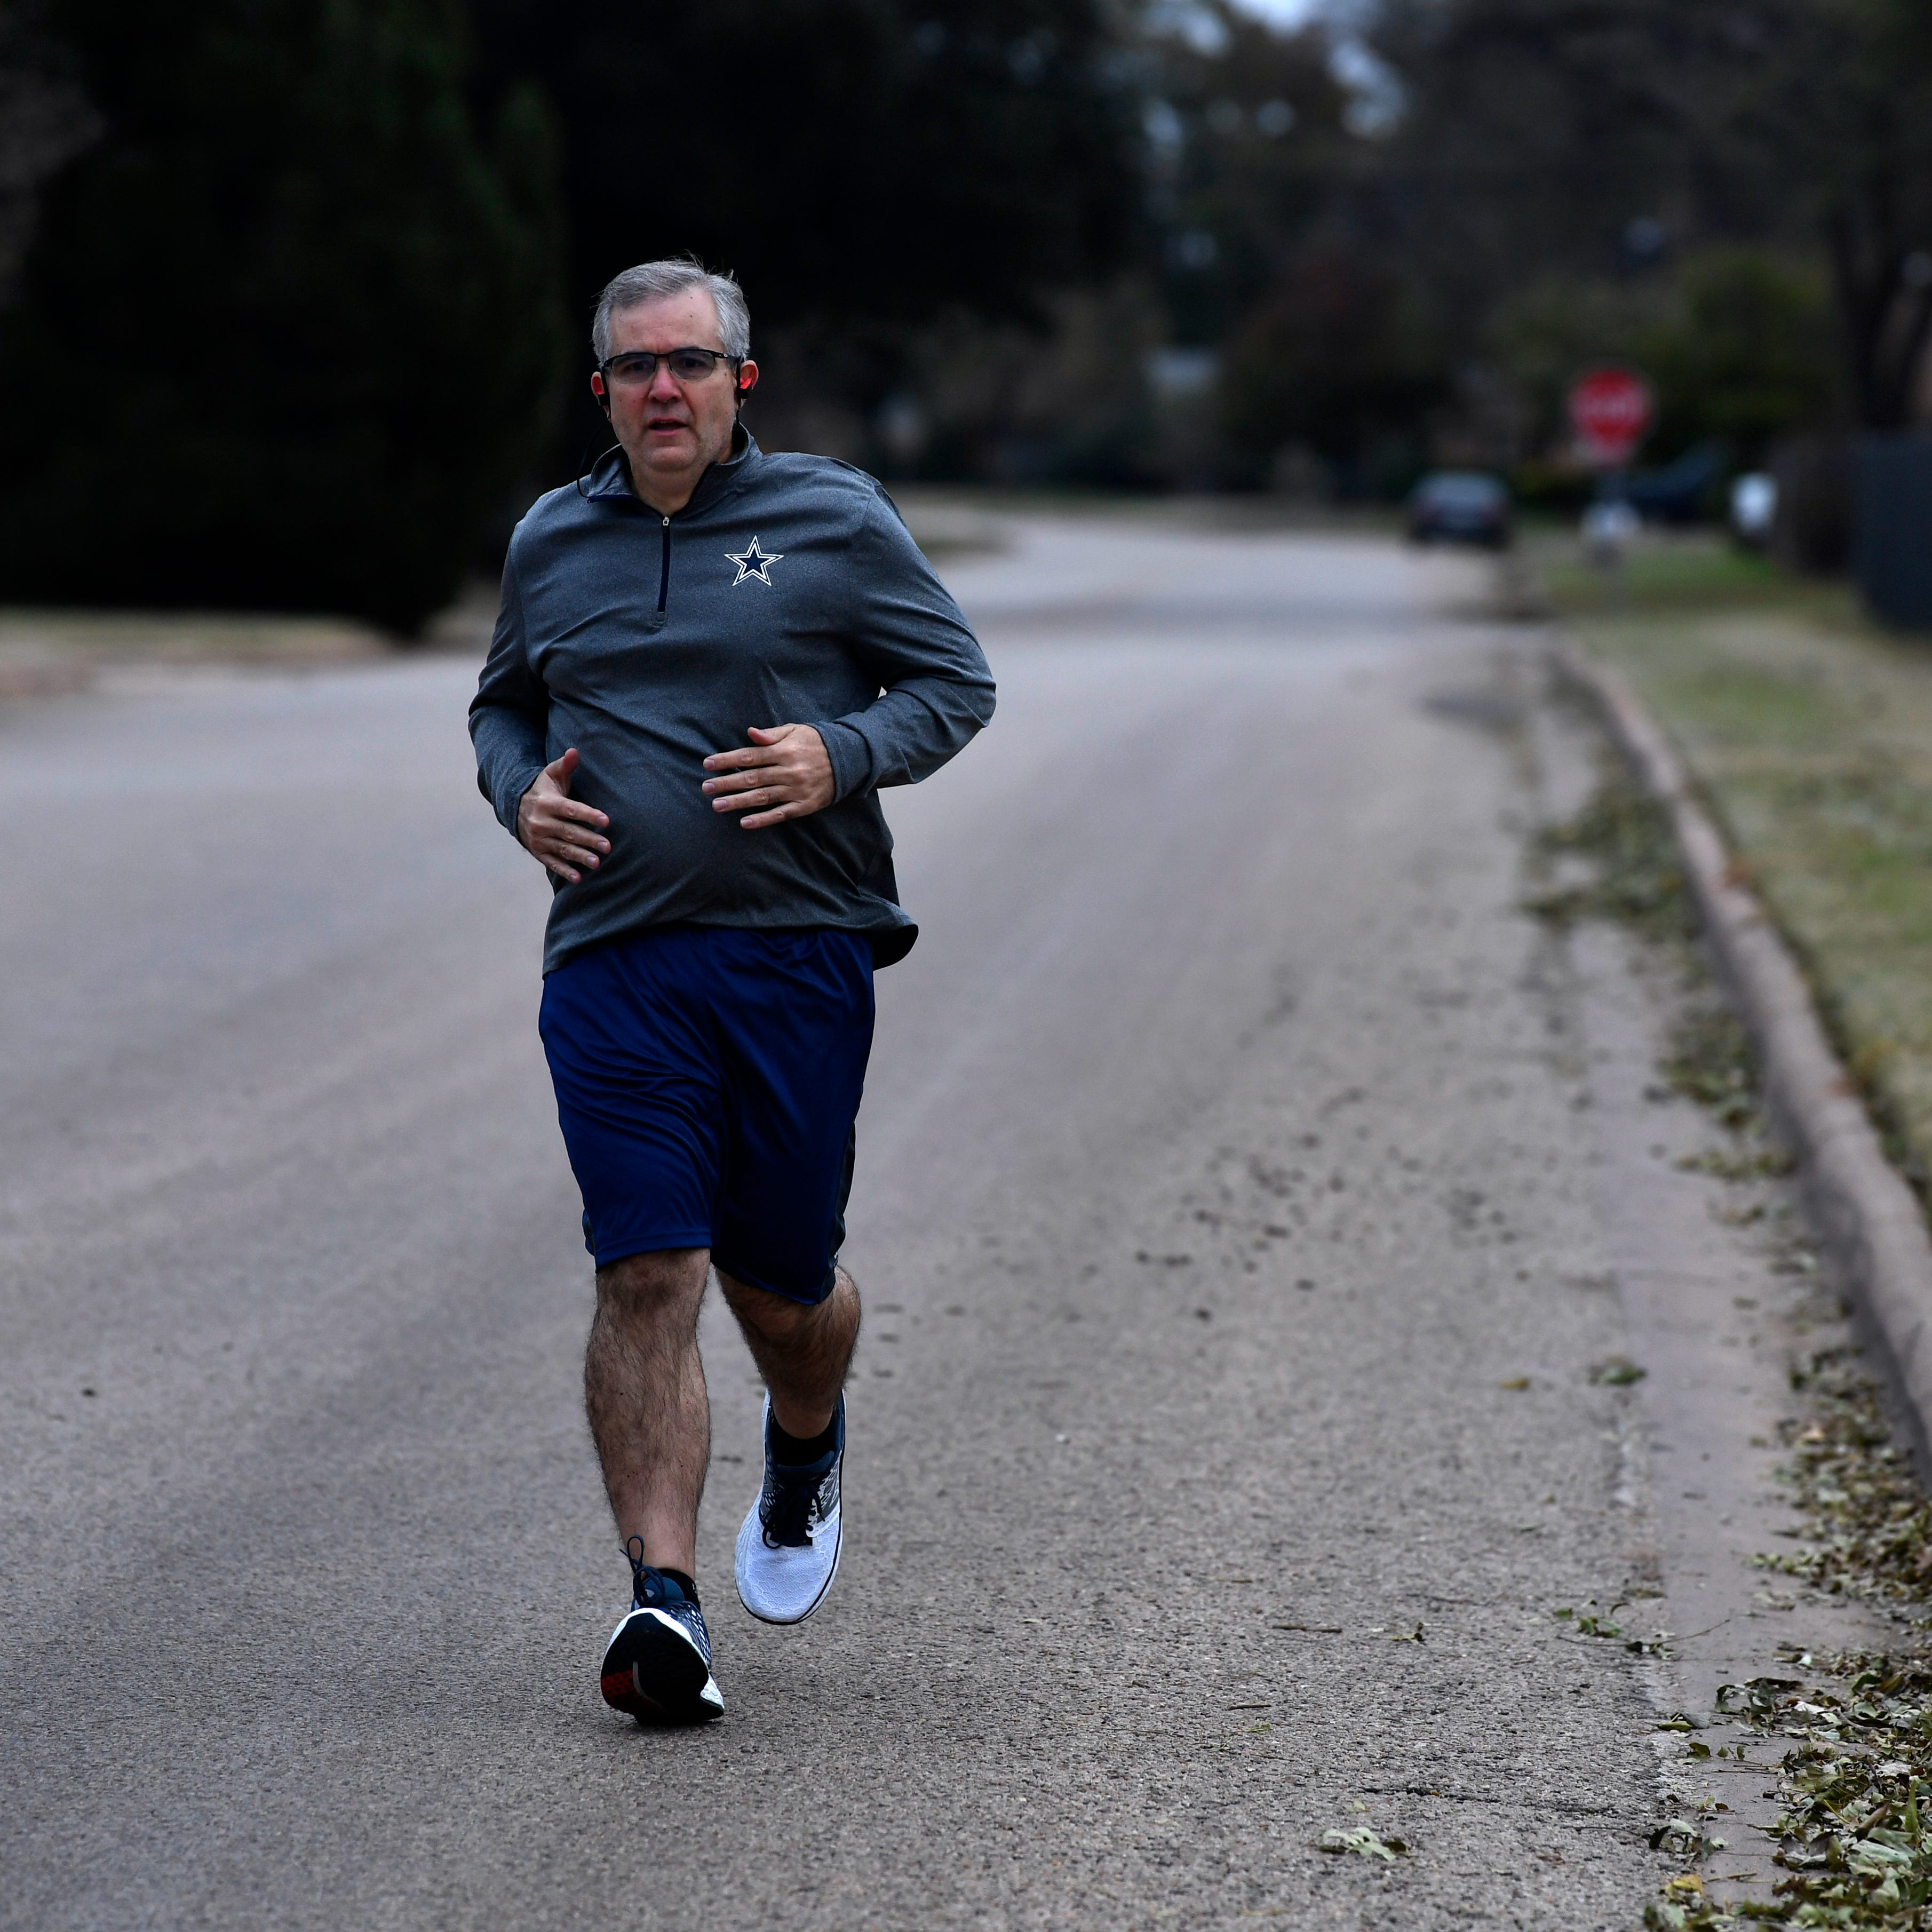 Abilene ISD Superintendent David Young enjoys 100-pound weight loss